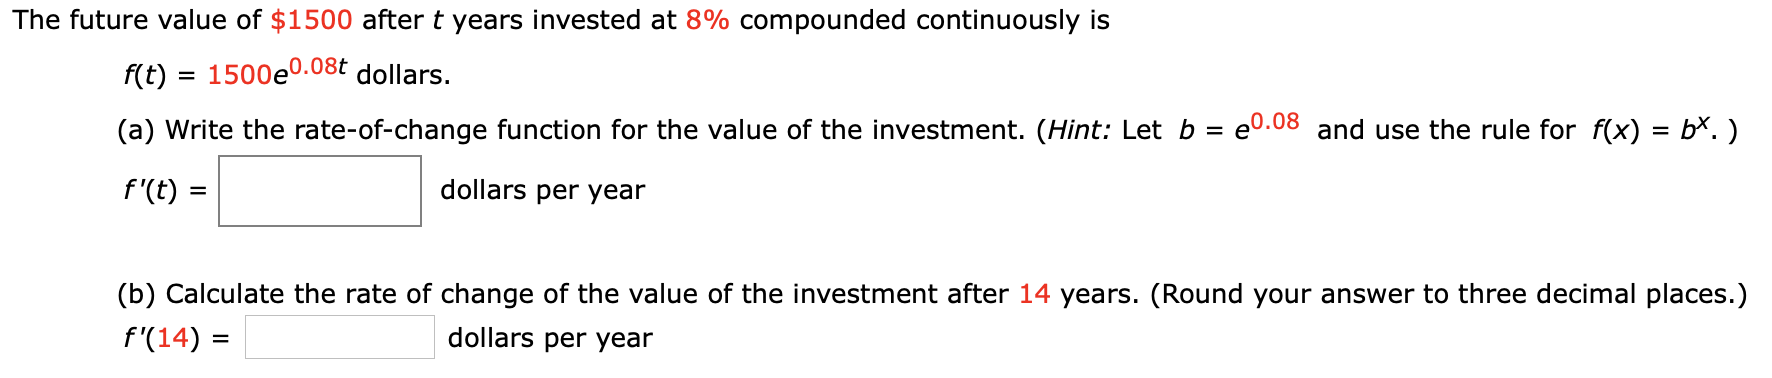 The future value of $1500 after t years invested at 8% compounded continuously is f(t)1500e0.08t dollars. e0.08 and use the rule for f(x) = b*.) (a) Write the rate-of-change function for the value of the investment. (Hint: Let b dollars per year f'(t) = (b) Calculate the rate of change of the value of the investment after 14 years. (Round your answer to three decimal places.) dollars per year f'(14)